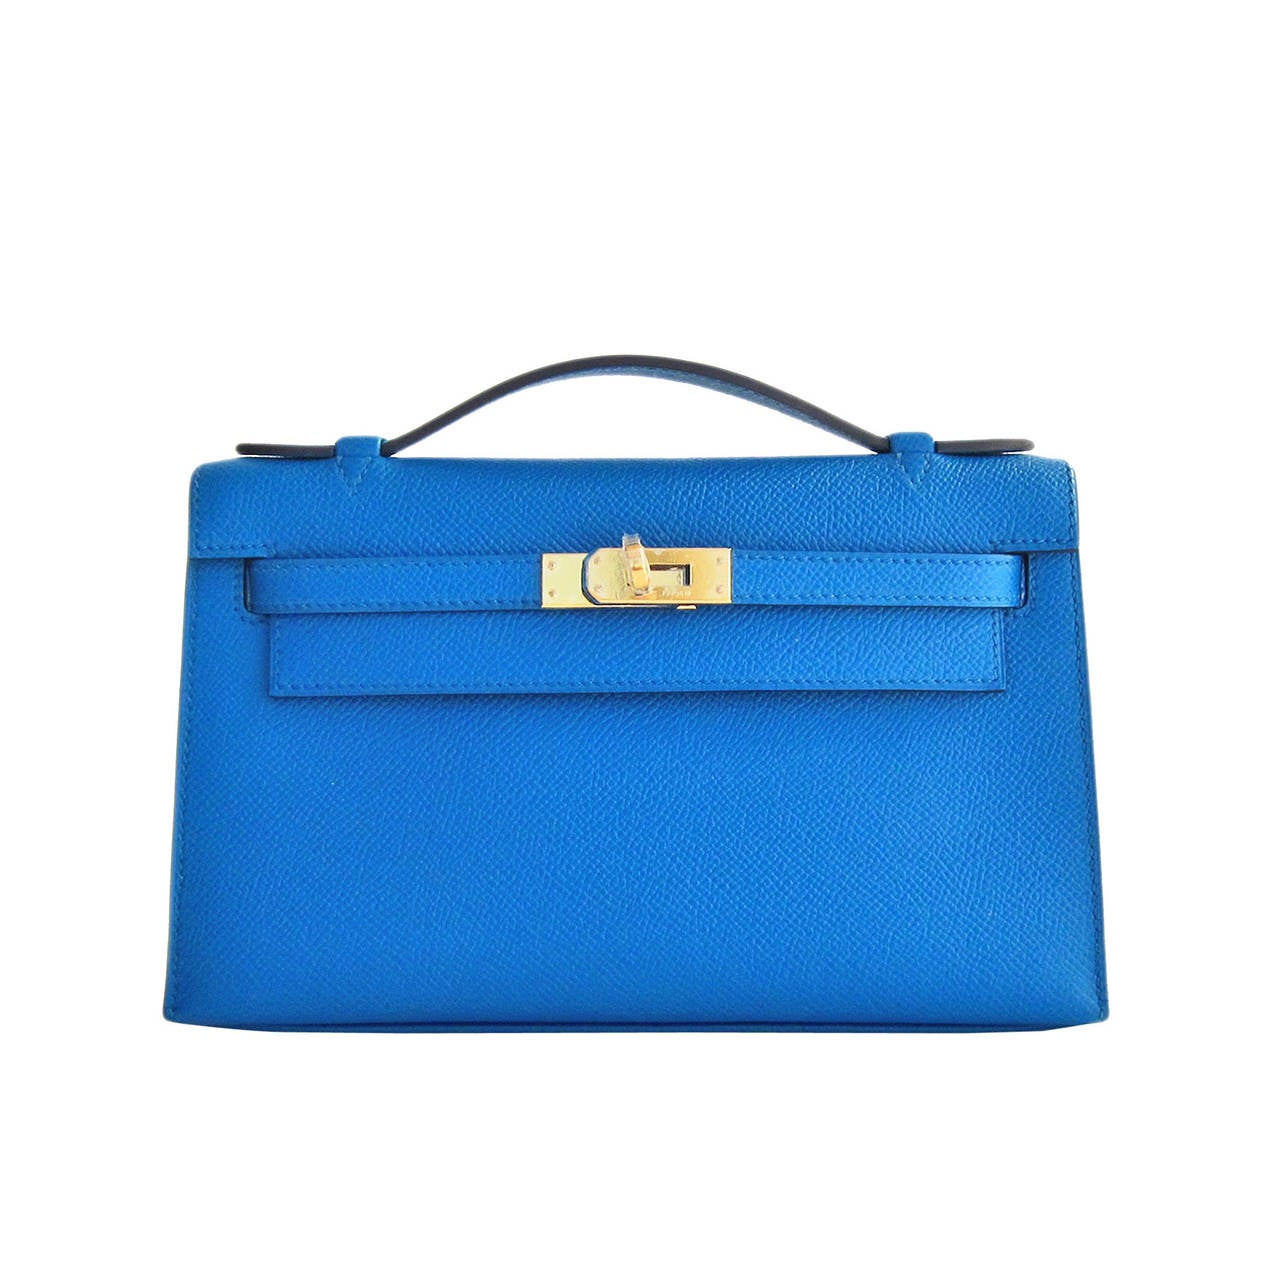 hermes taschen - Vintage Herm��s Handbags and Purses - 1,396 For Sale at 1stdibs